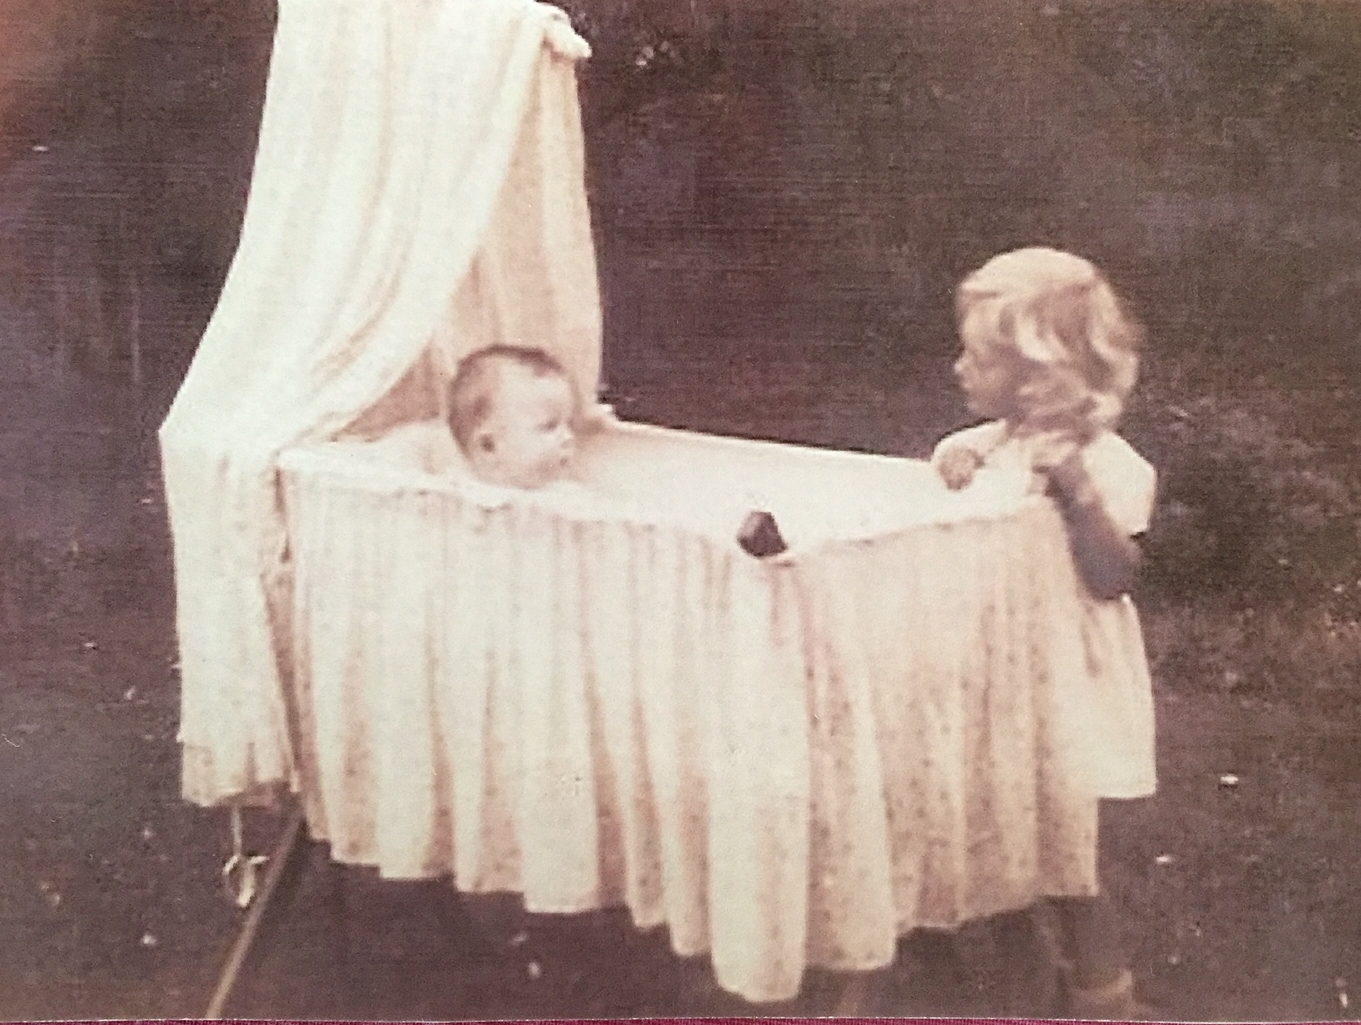 Old photo of a baby sitting in a draped bassinetobserved by a little girl